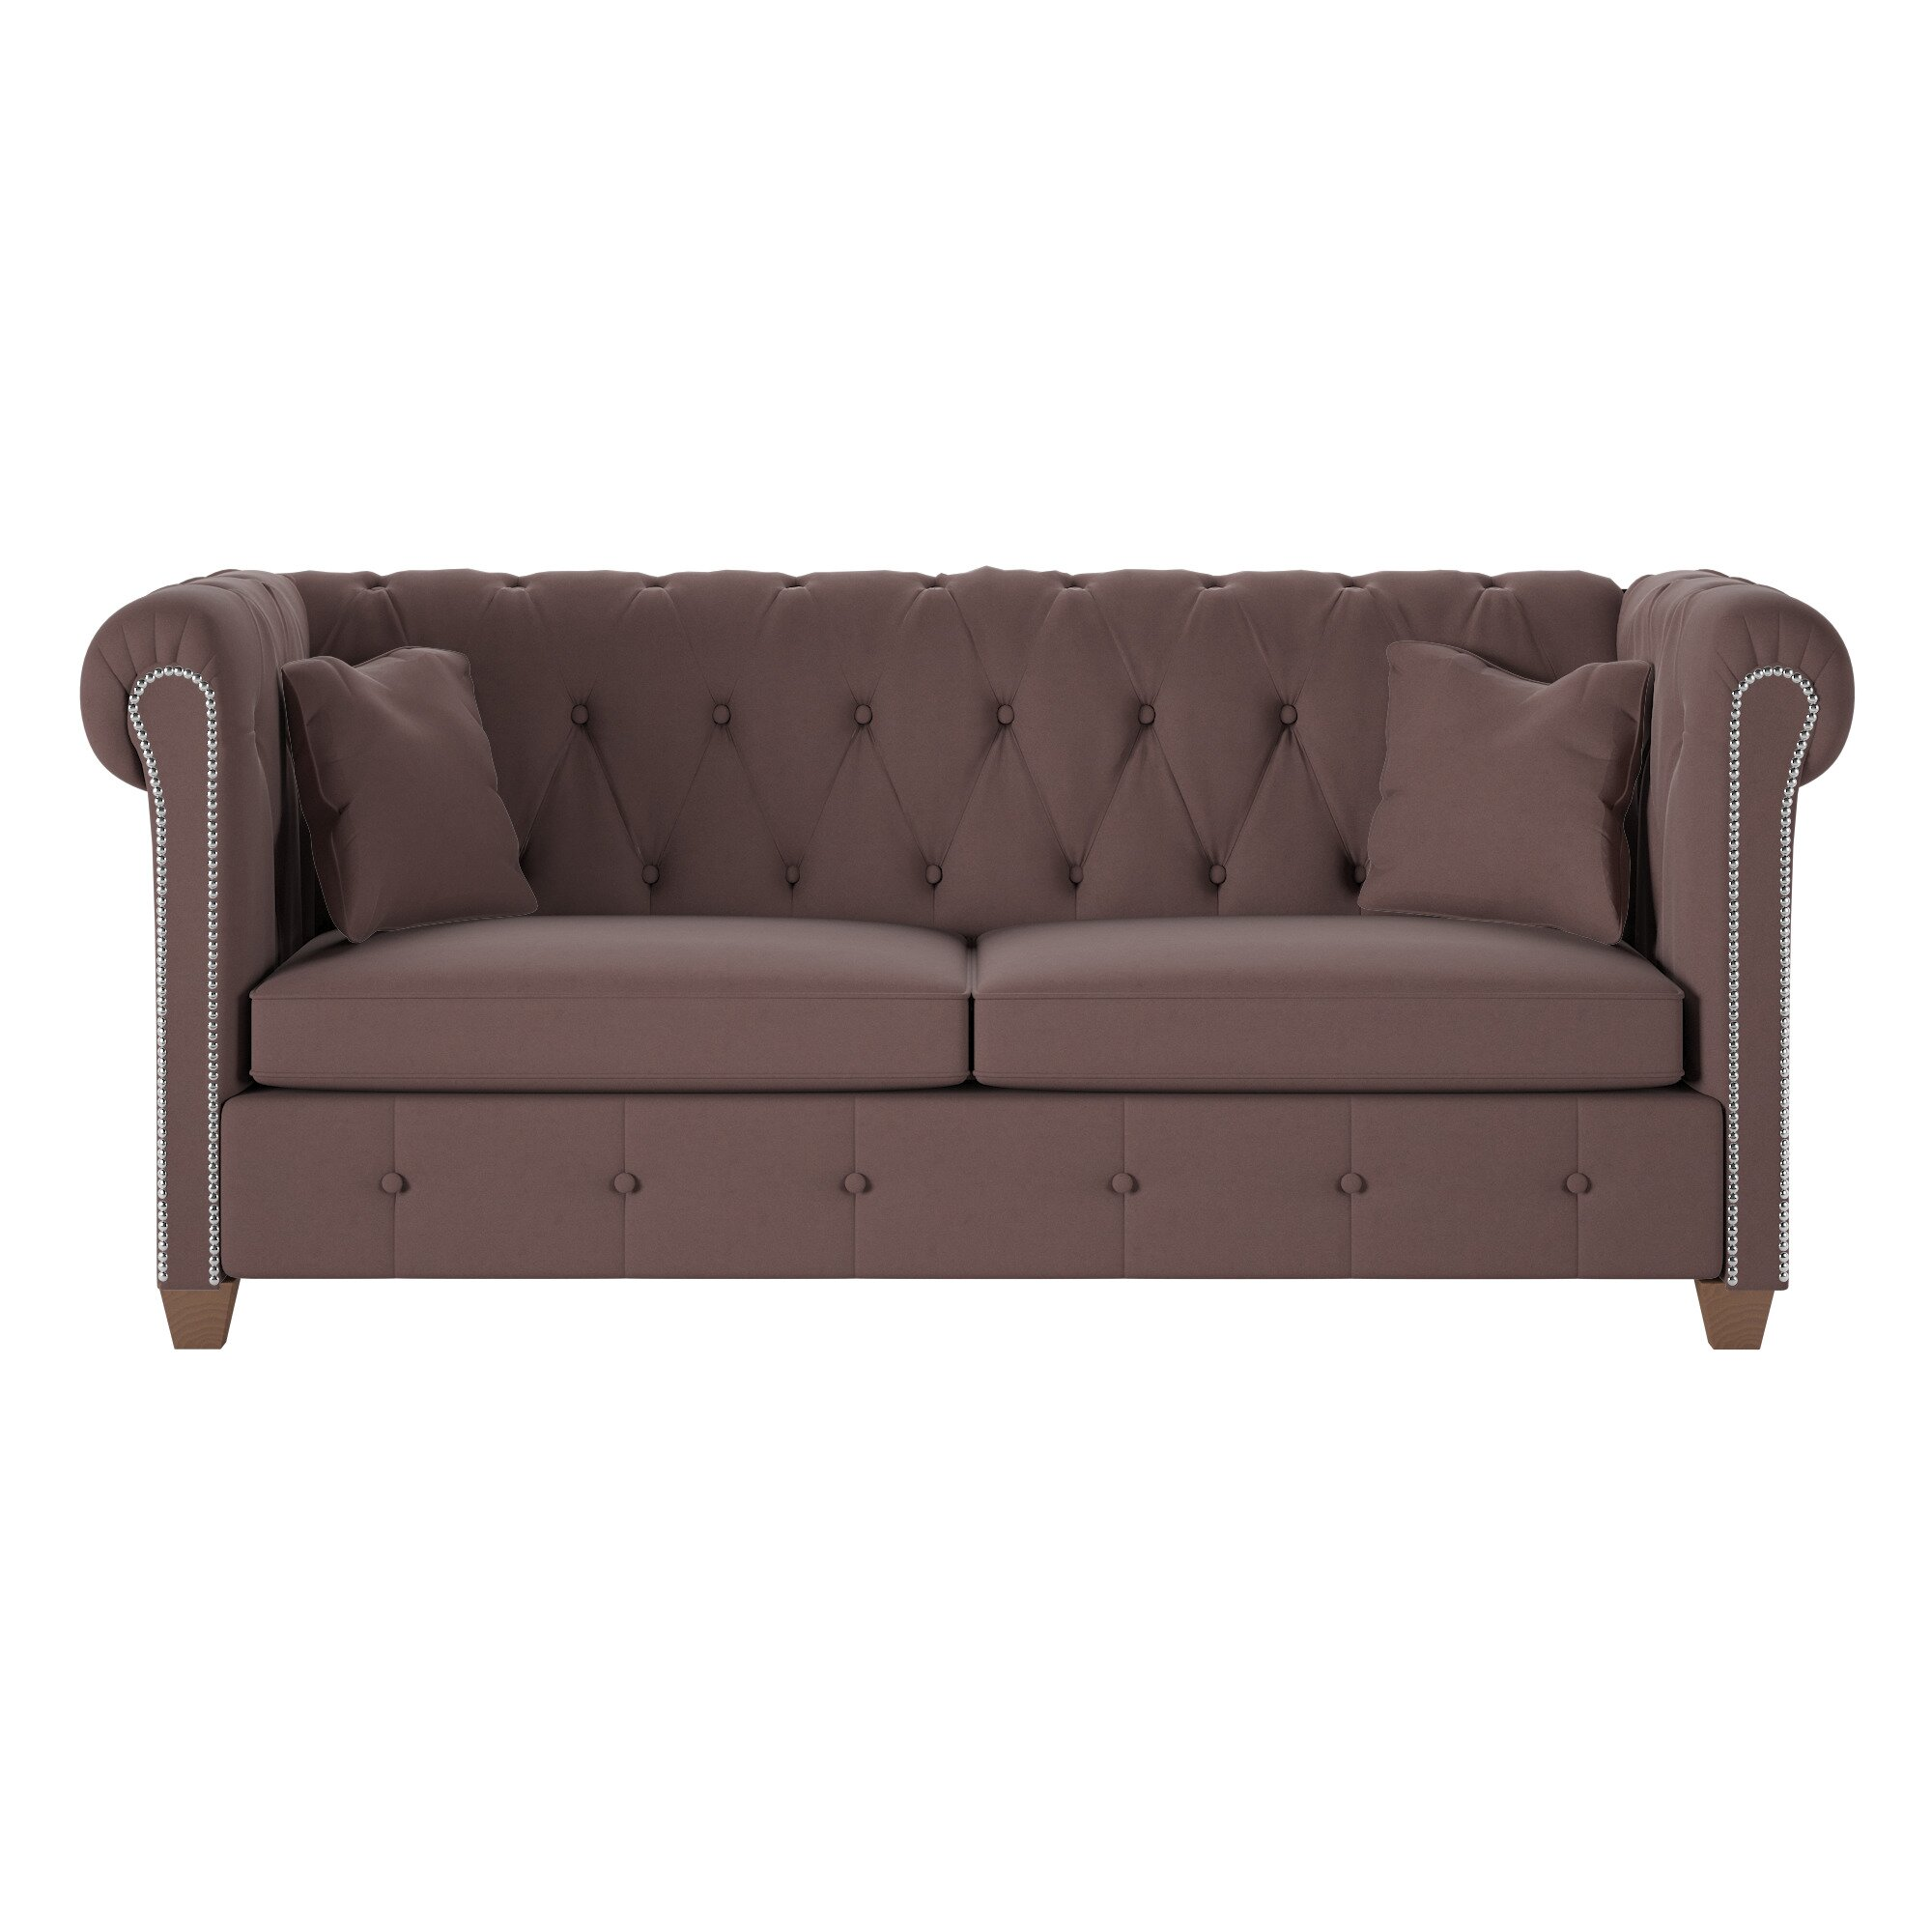 Wayfair Custom Upholstery u2122 Josephine Tufted Chesterfield Sofa& Reviews Wayfair